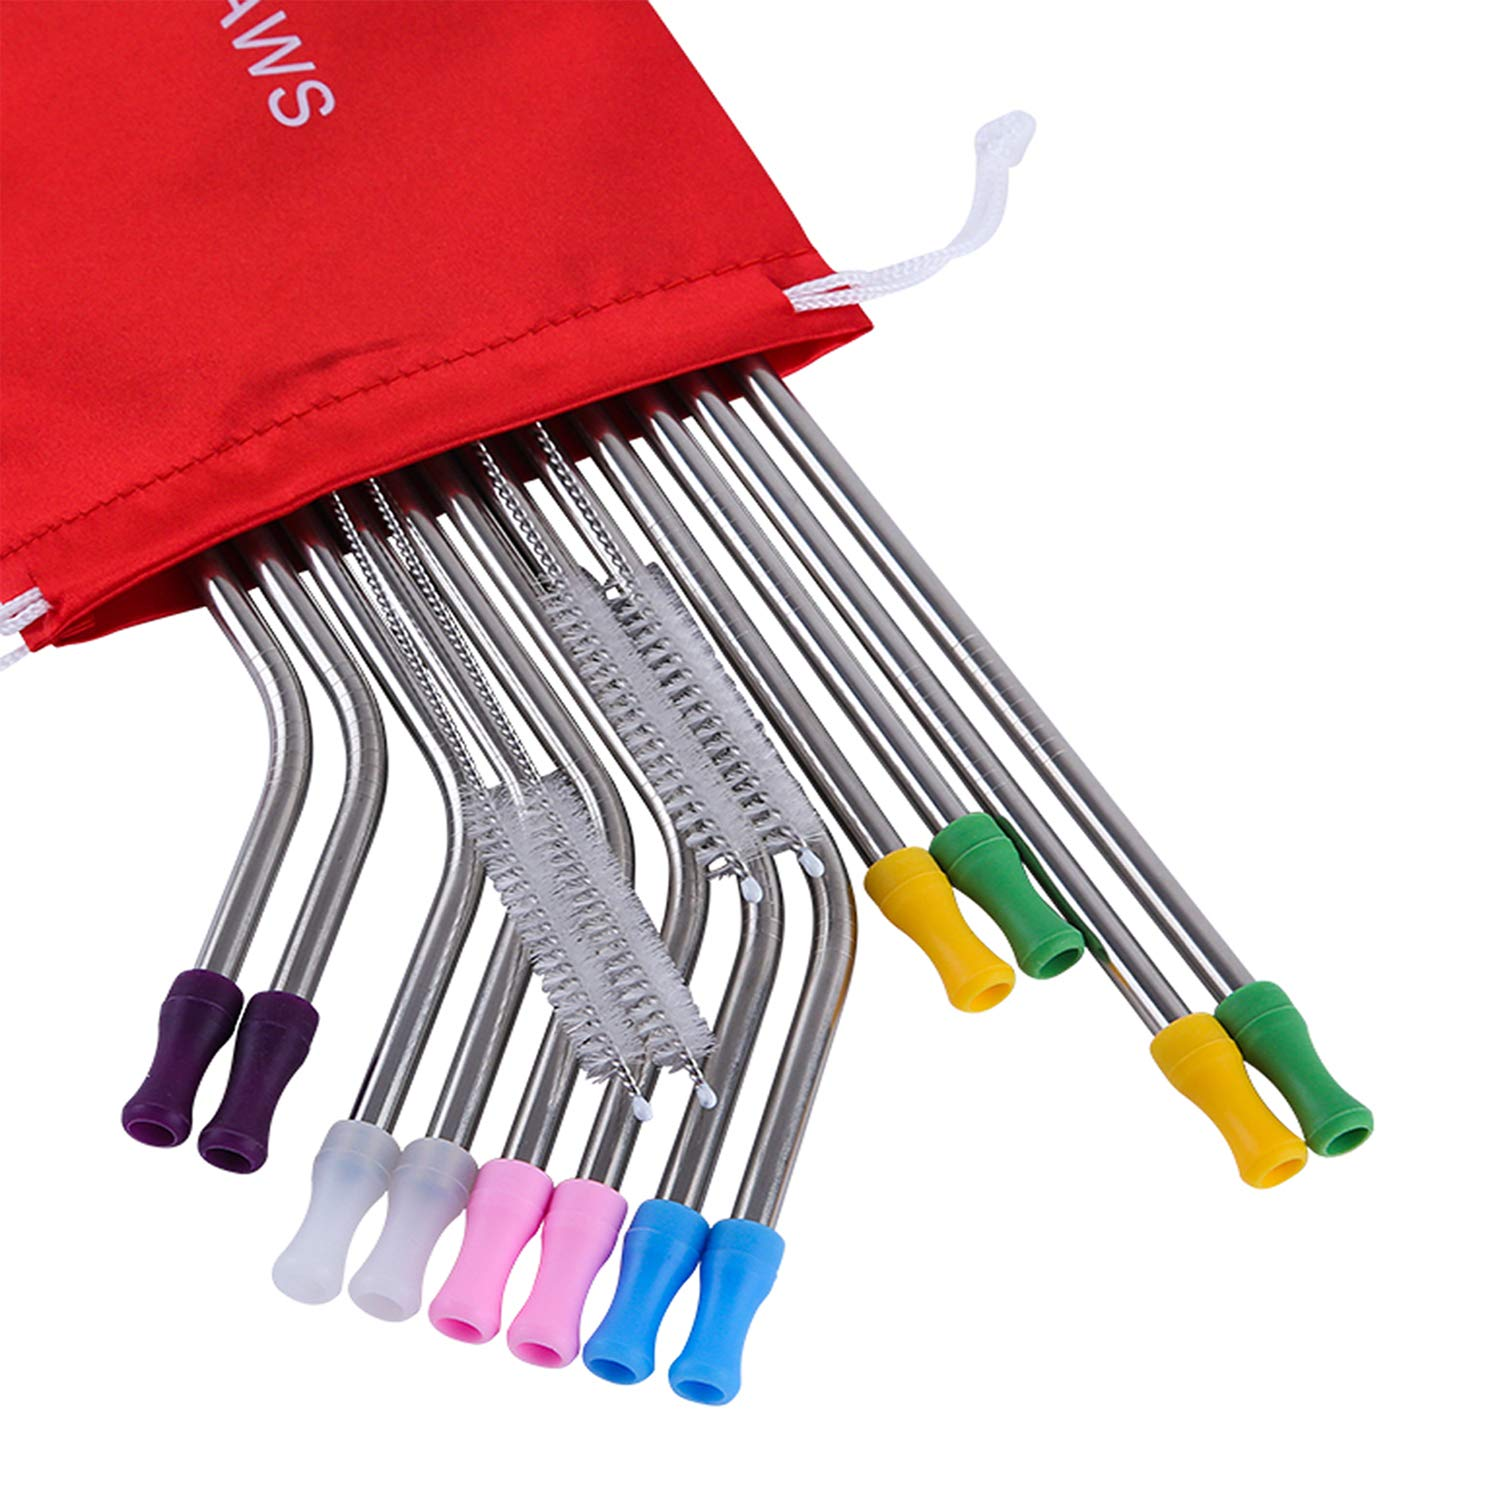 Mcool 12Pcs Variety Size of Stainless Steel Straws for 20&30OZ Yeti/Rtic/Ozark Tumblers +12Pcs Silicone Tips+4Pcs Brushes+ 1 Red Storage Pouch by Mcool